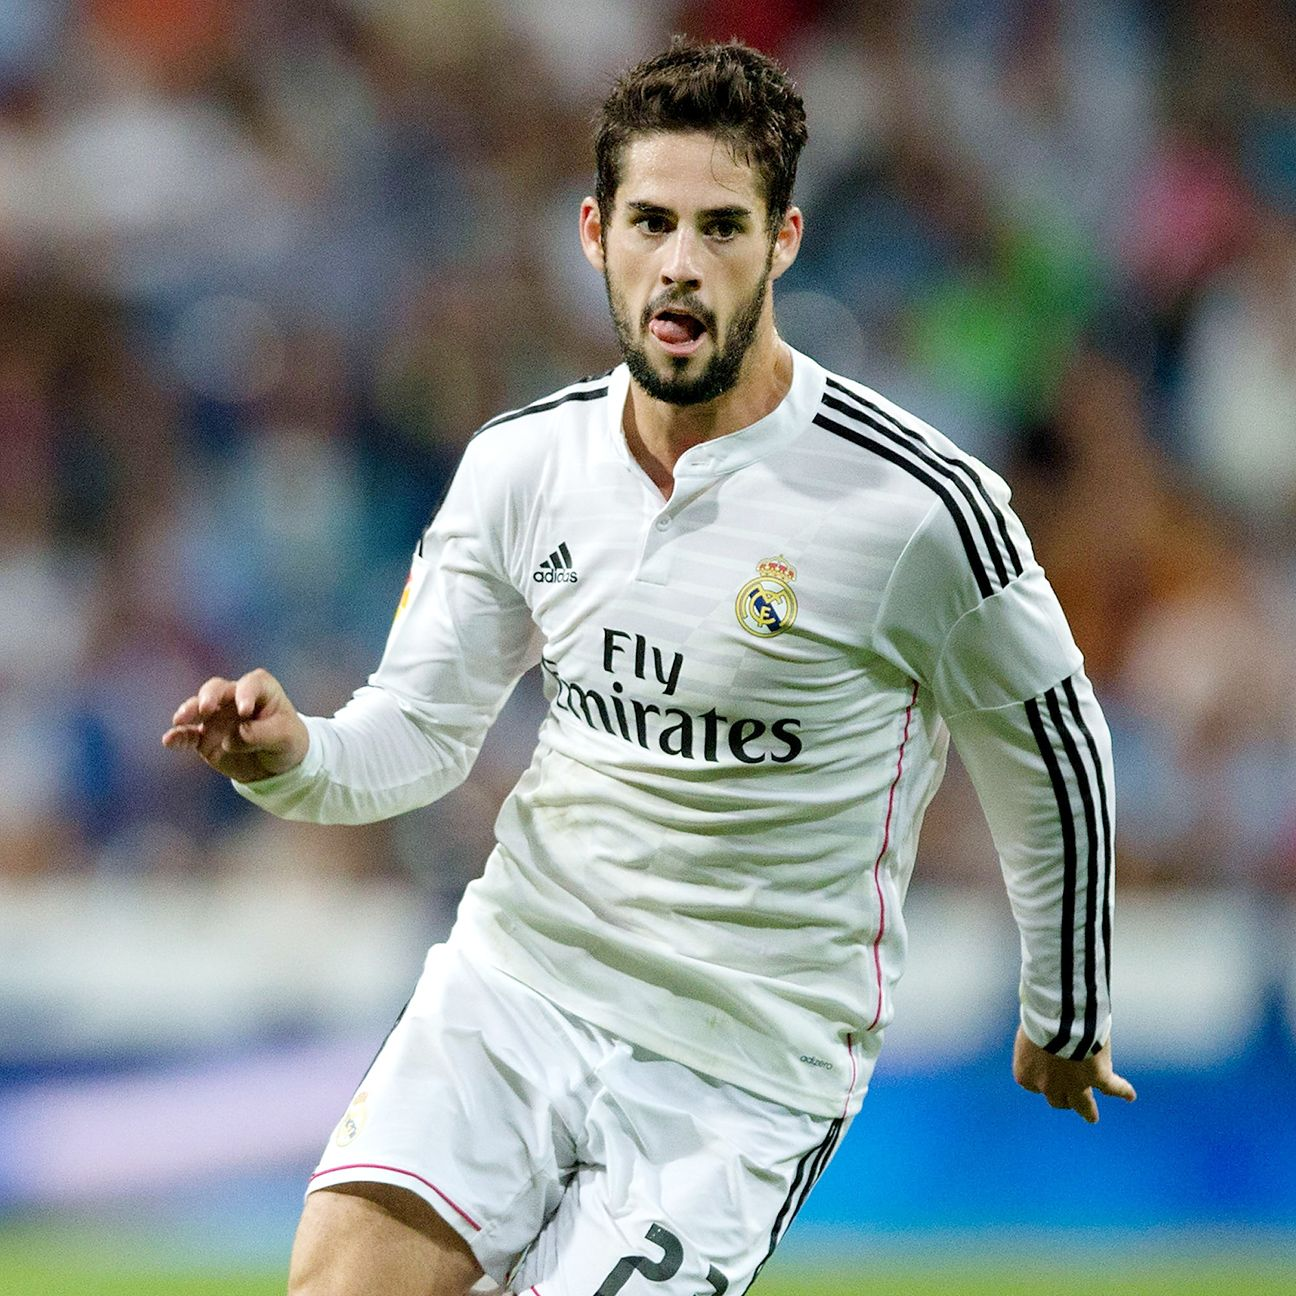 With Luka Modric out injured, all signs point toward Isco moving to the center of the pitch to anchor the Real Madrid midfield along with Toni Kroos.